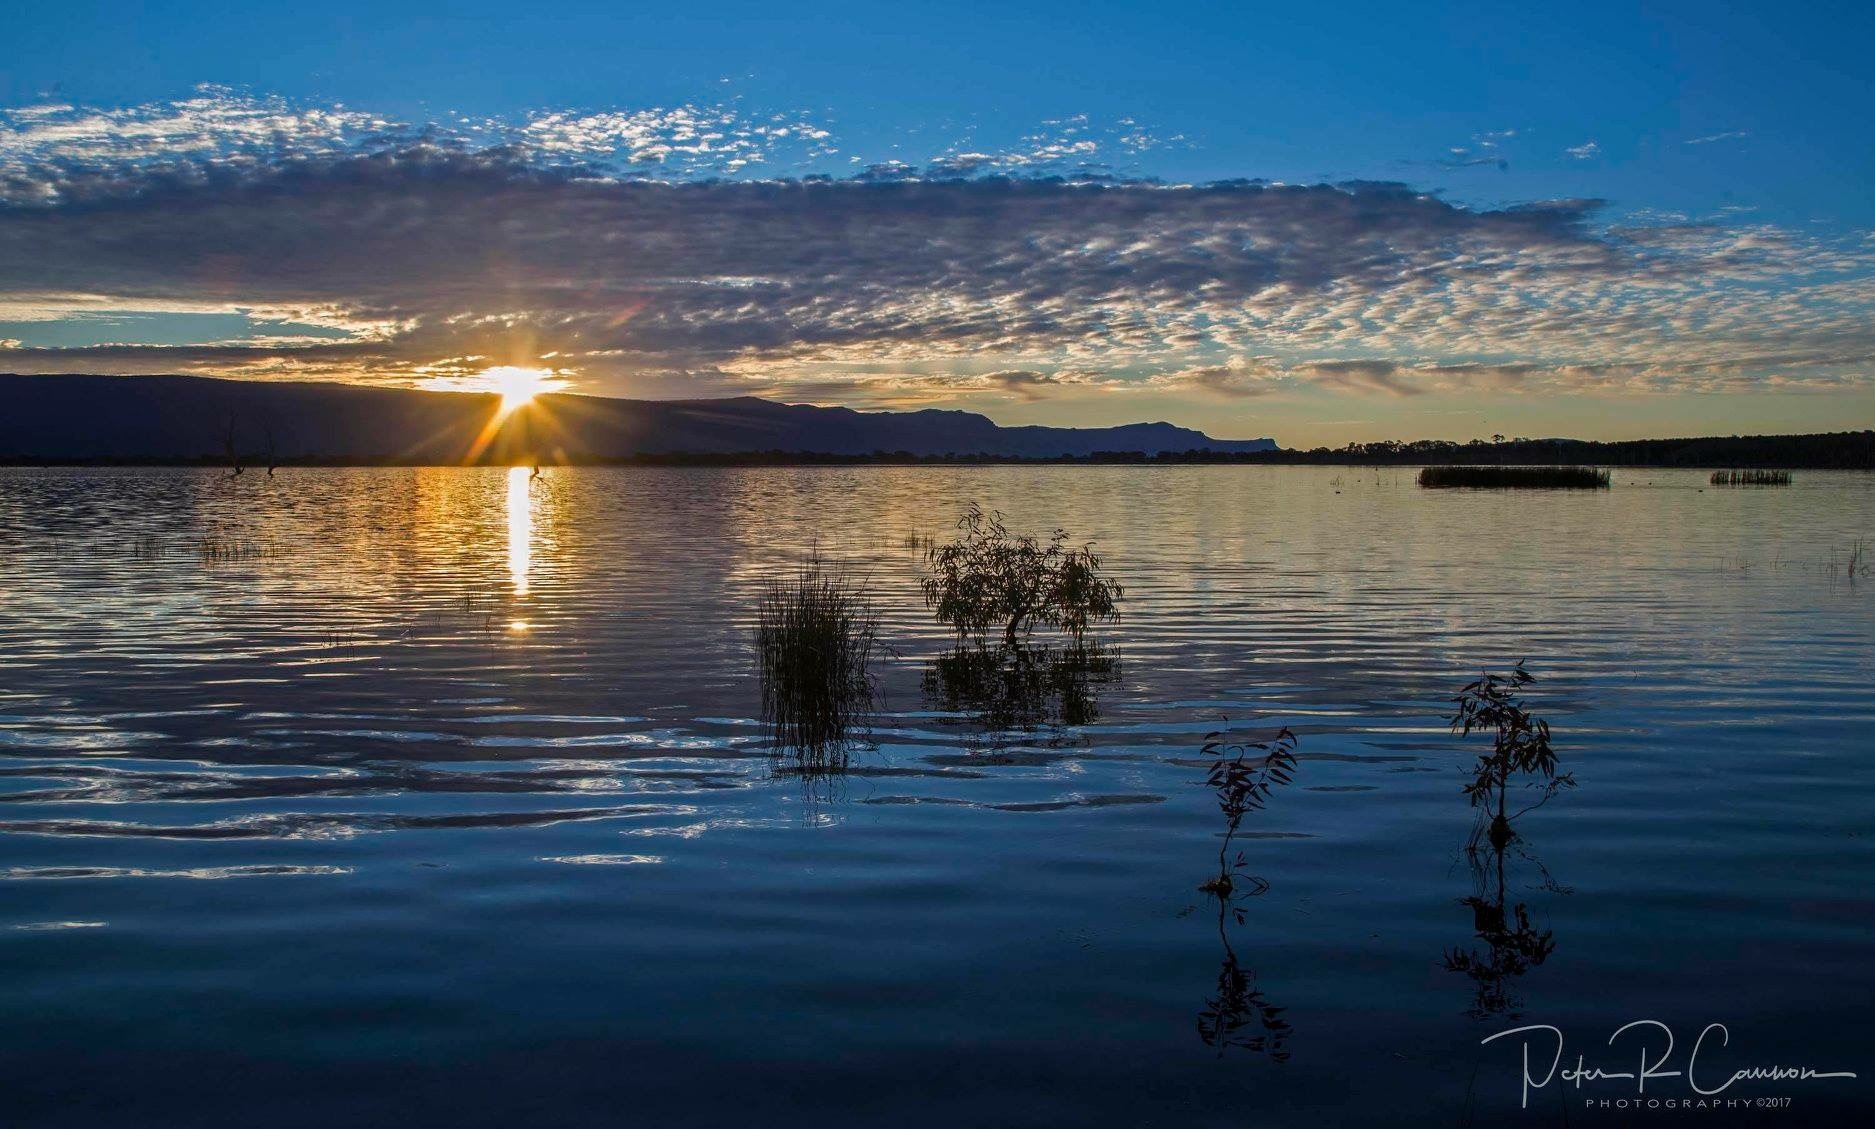 Sunset at Lake Fyans  by Peter Cannon